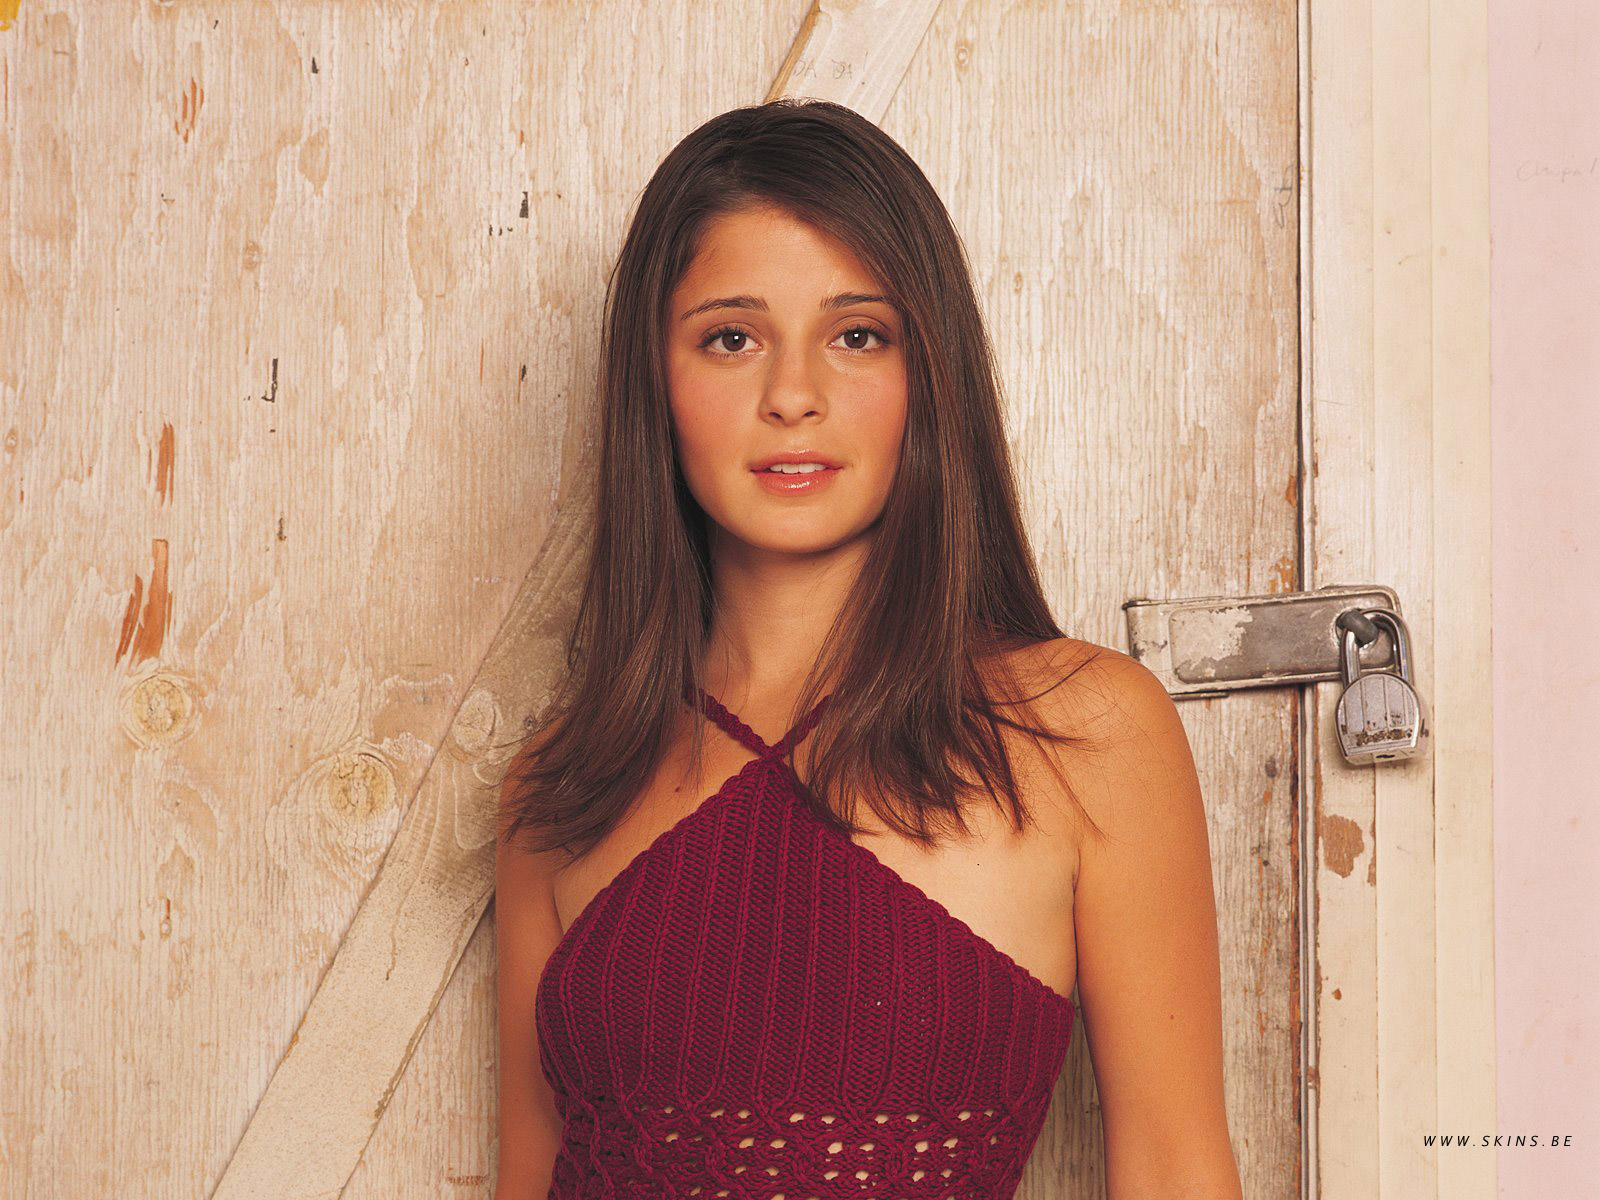 Shiri Appleby wallpaper (#3113)